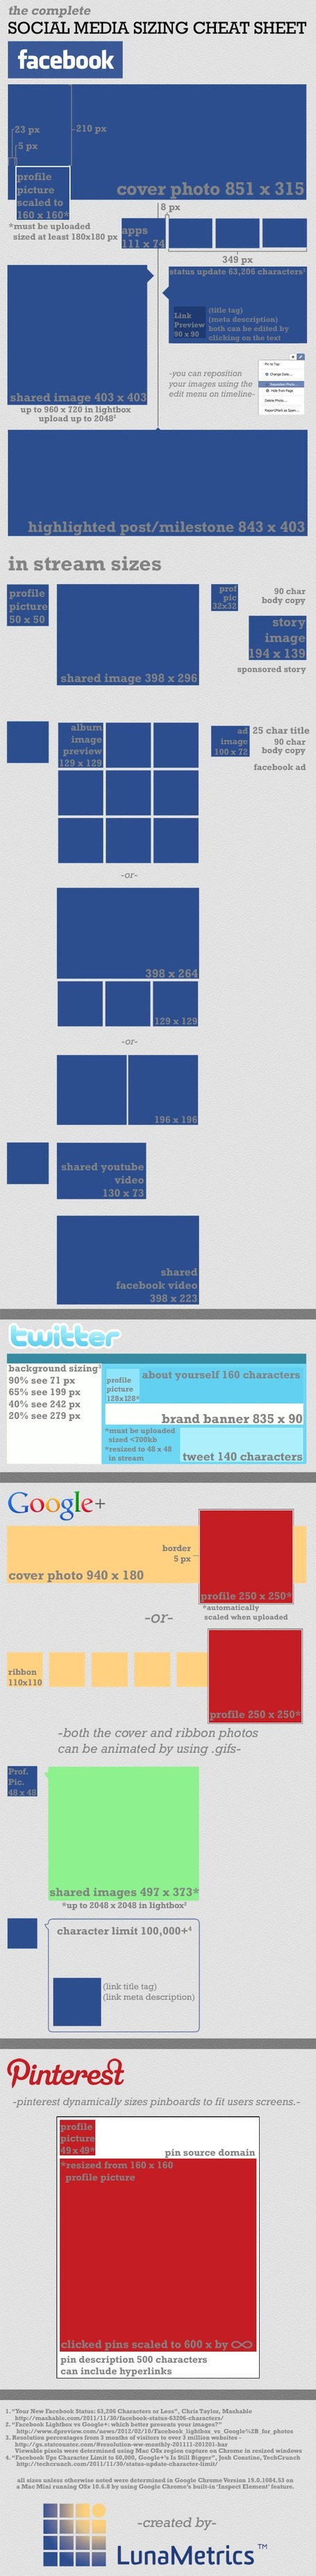 The Complete Social Media Sizing Cheat Sheet [INFOGRAPHIC] | formation 2.0 | Scoop.it